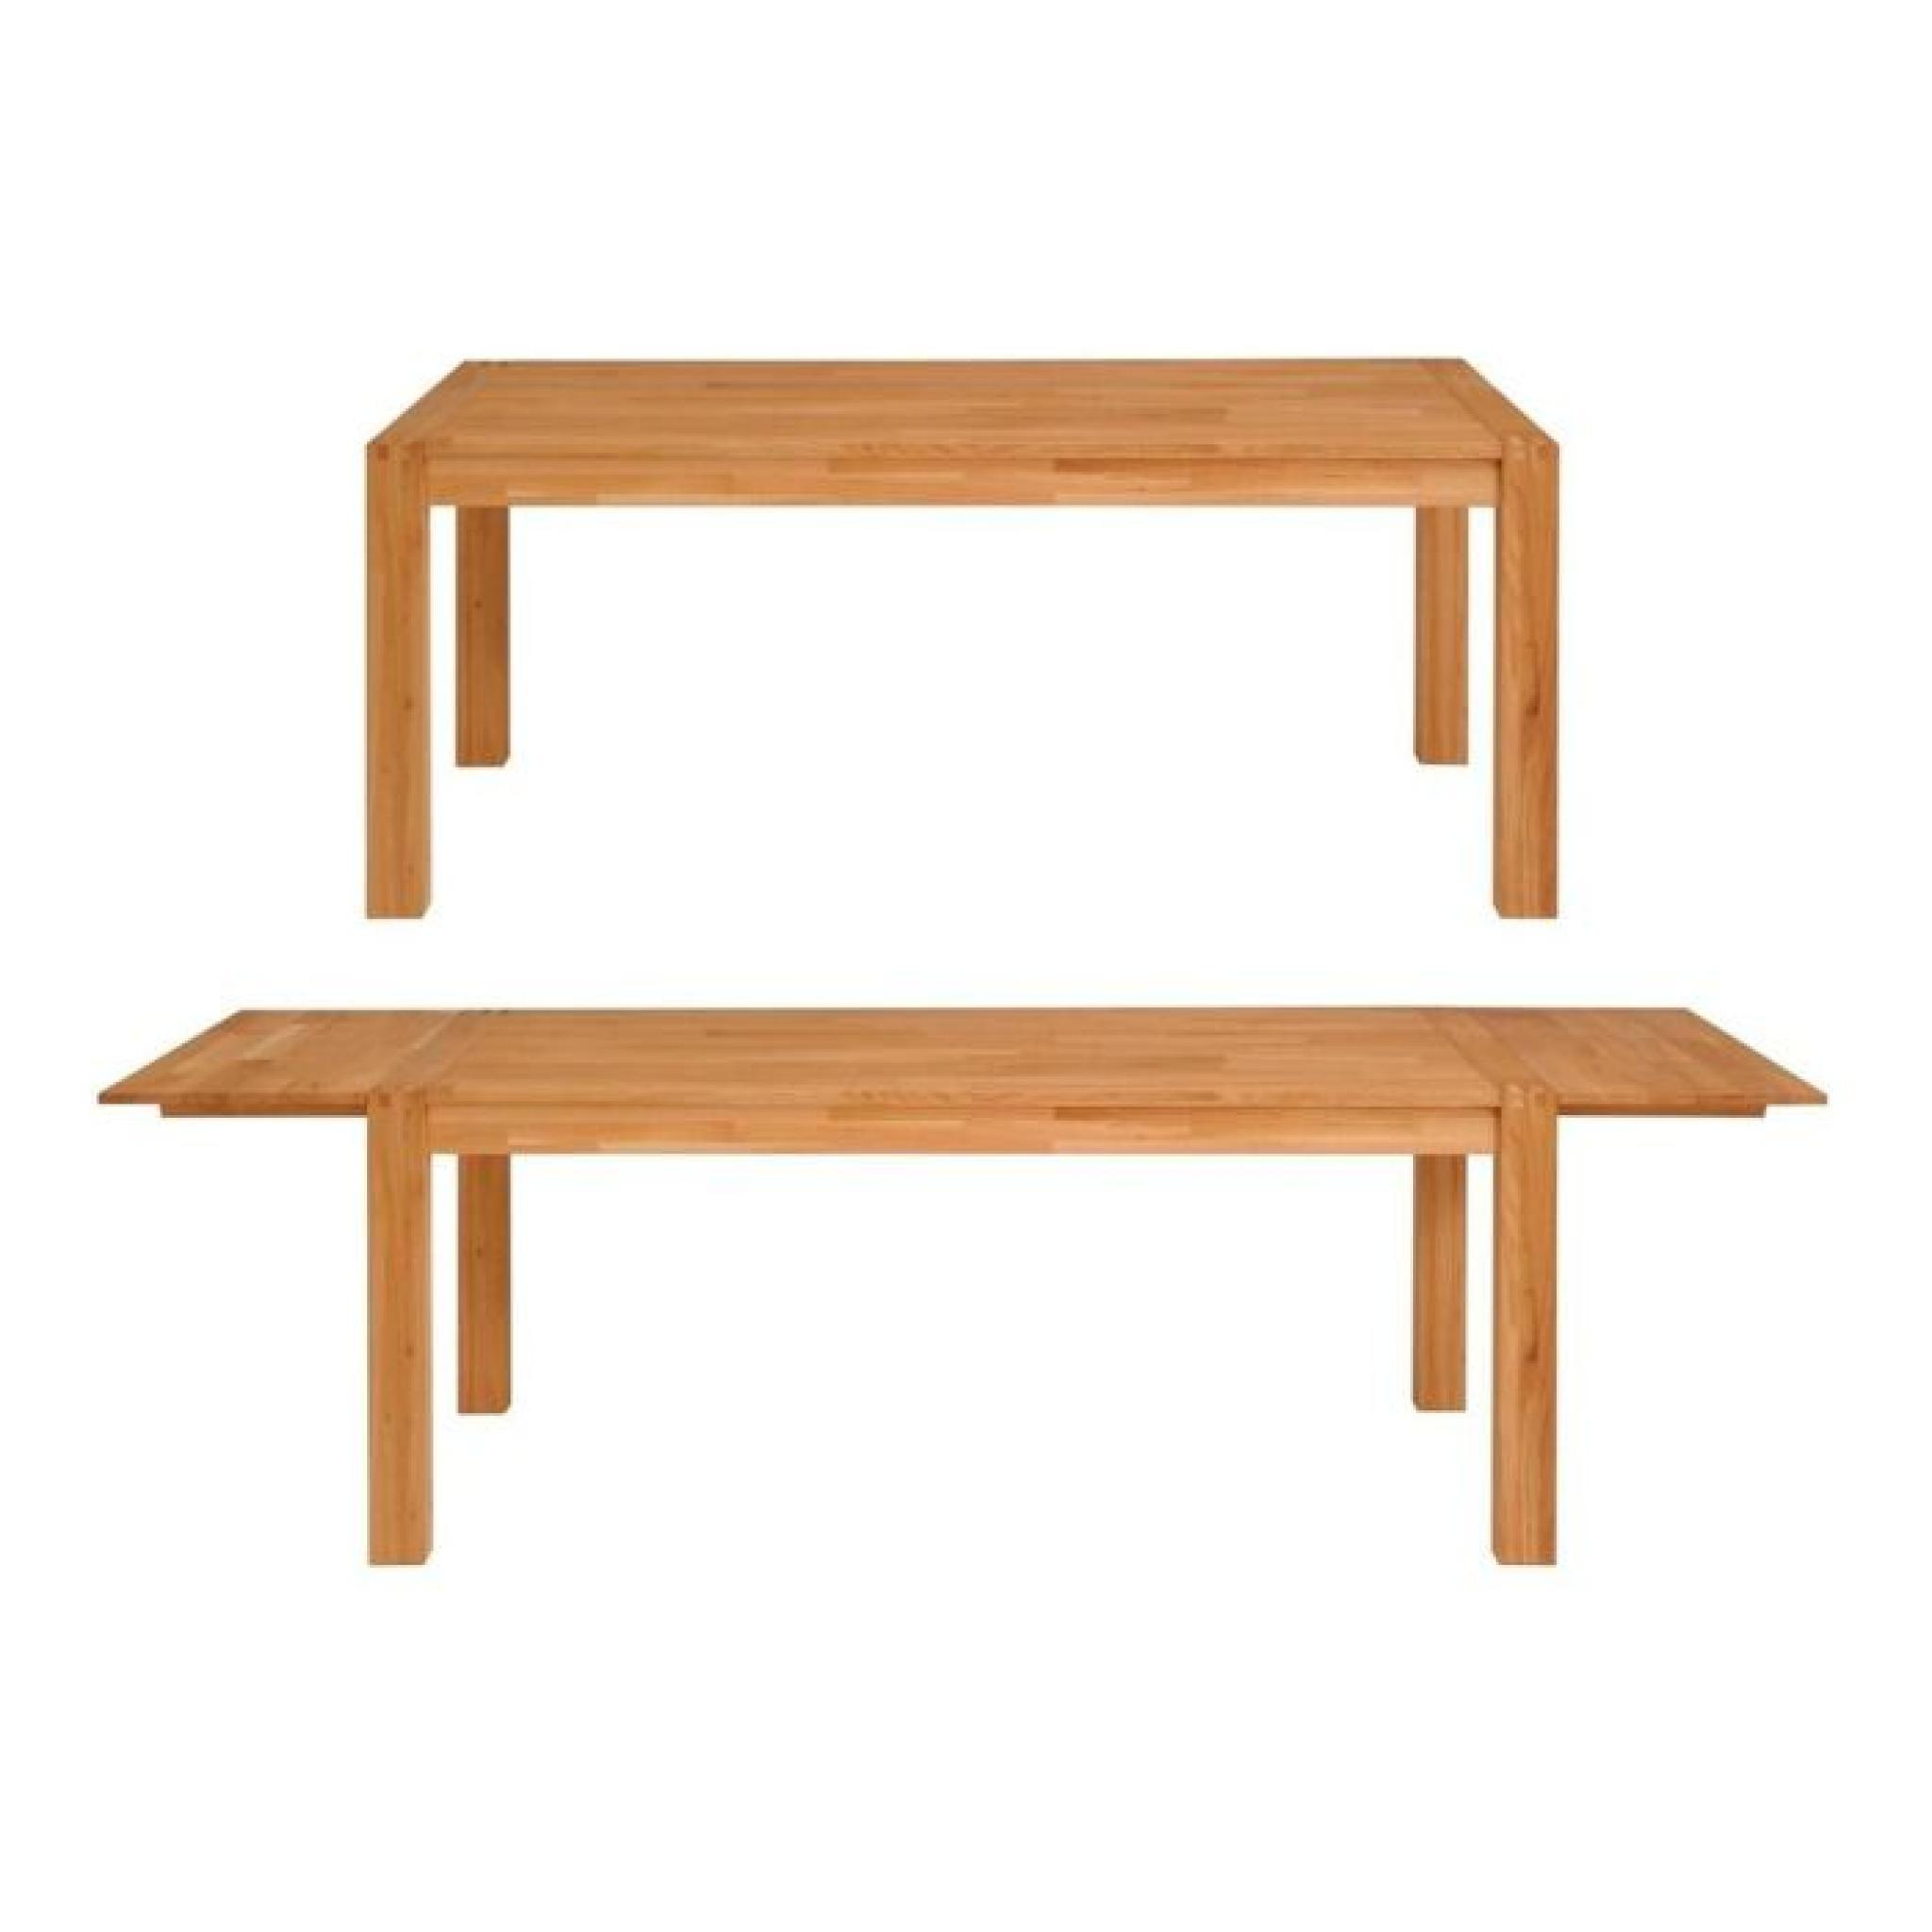 Nathan table extensible 180 260cm en ch ne massif achat - Table extensible chene ...